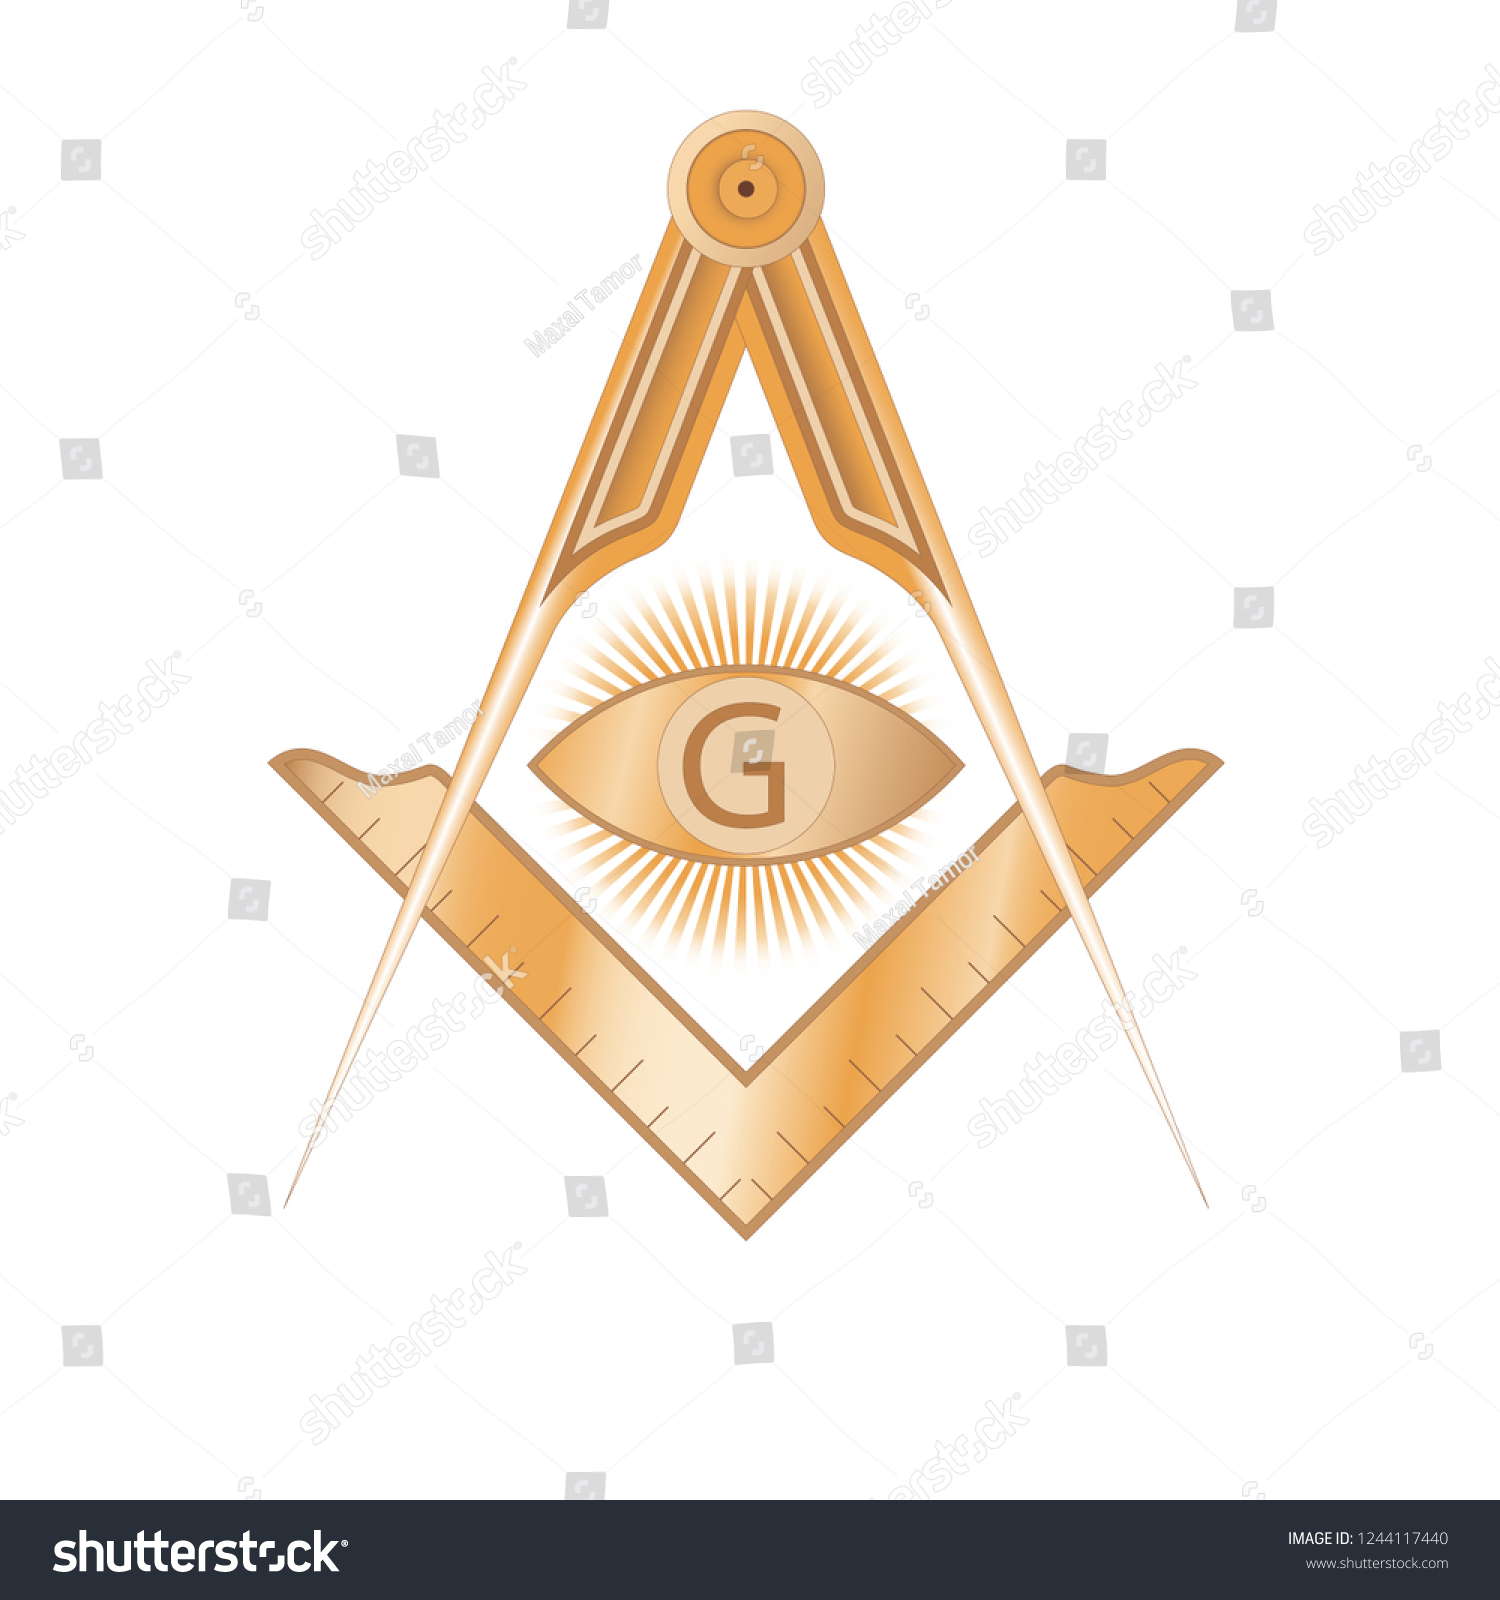 Copper Masonic Square Compass Symbol G Stock Vector (Royalty